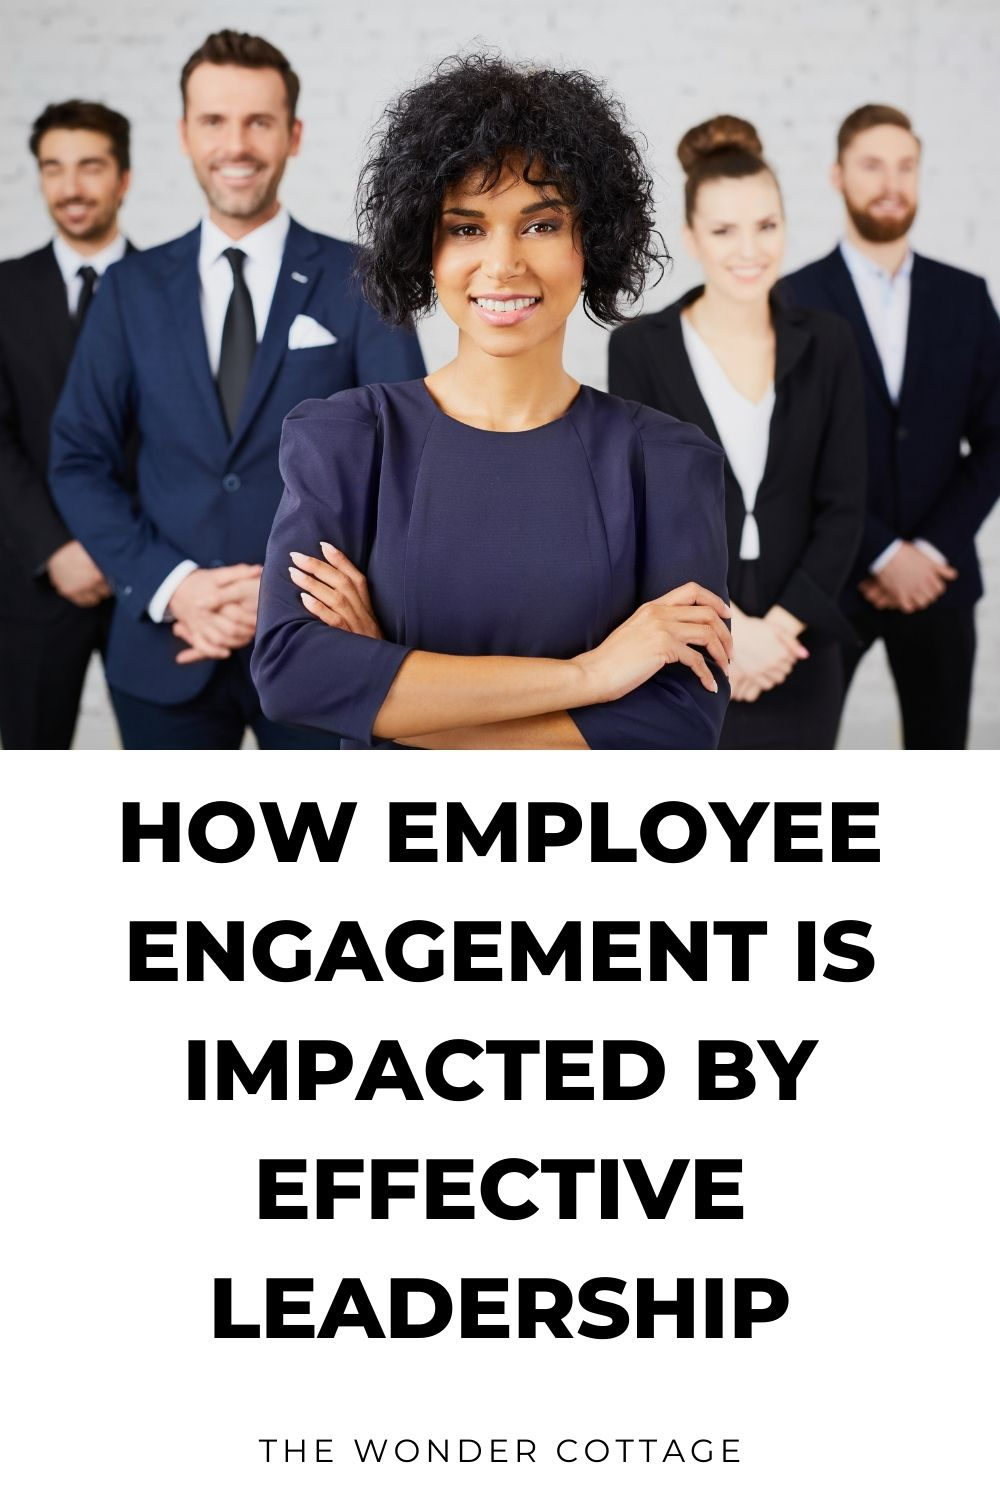 how employee engagement is impacted by effective leadership